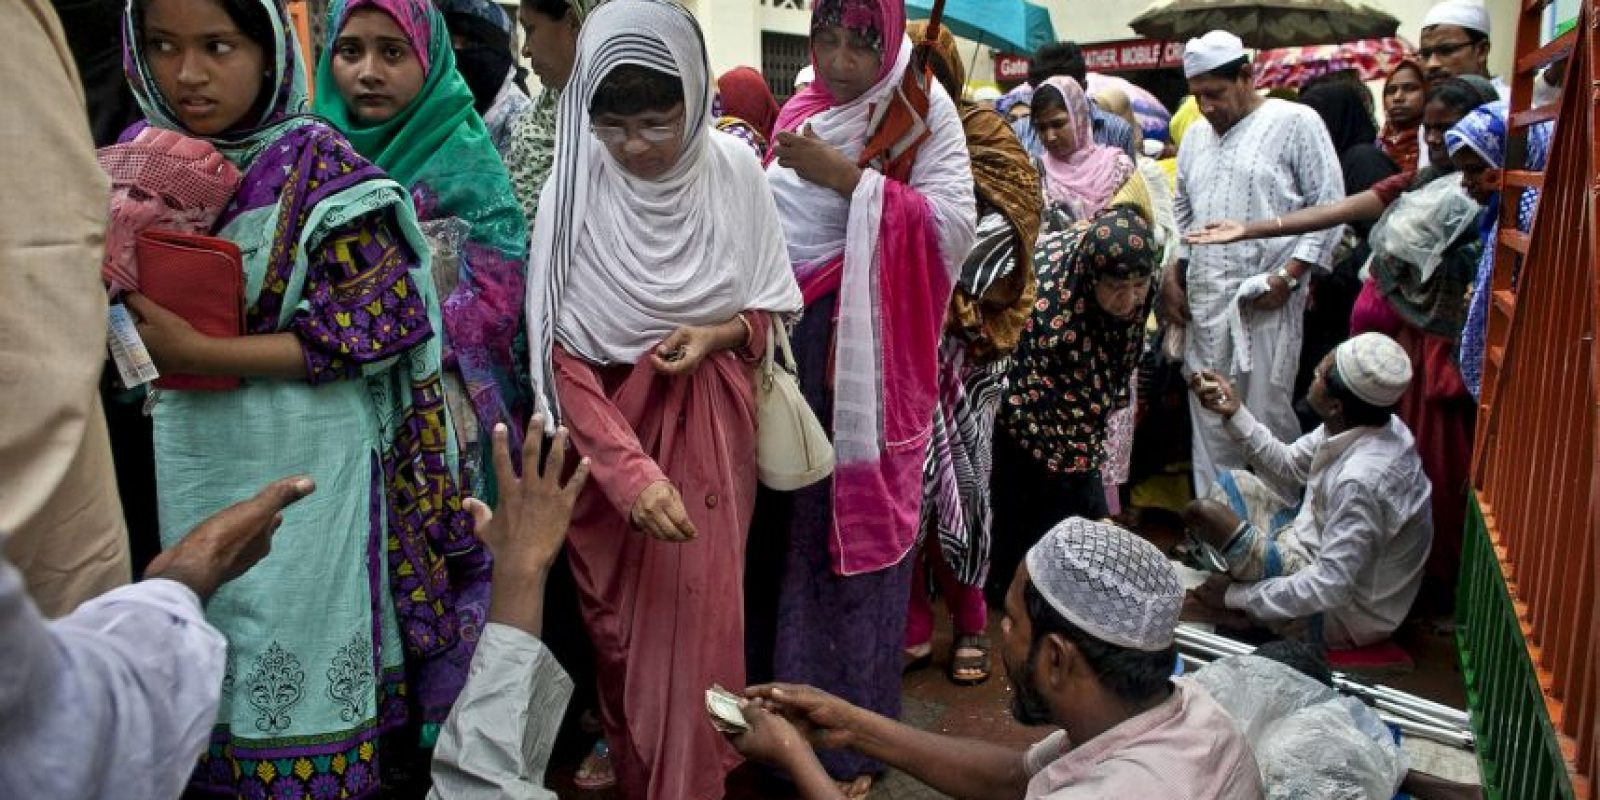 Bangladesh (37%) Foto: Getty Images